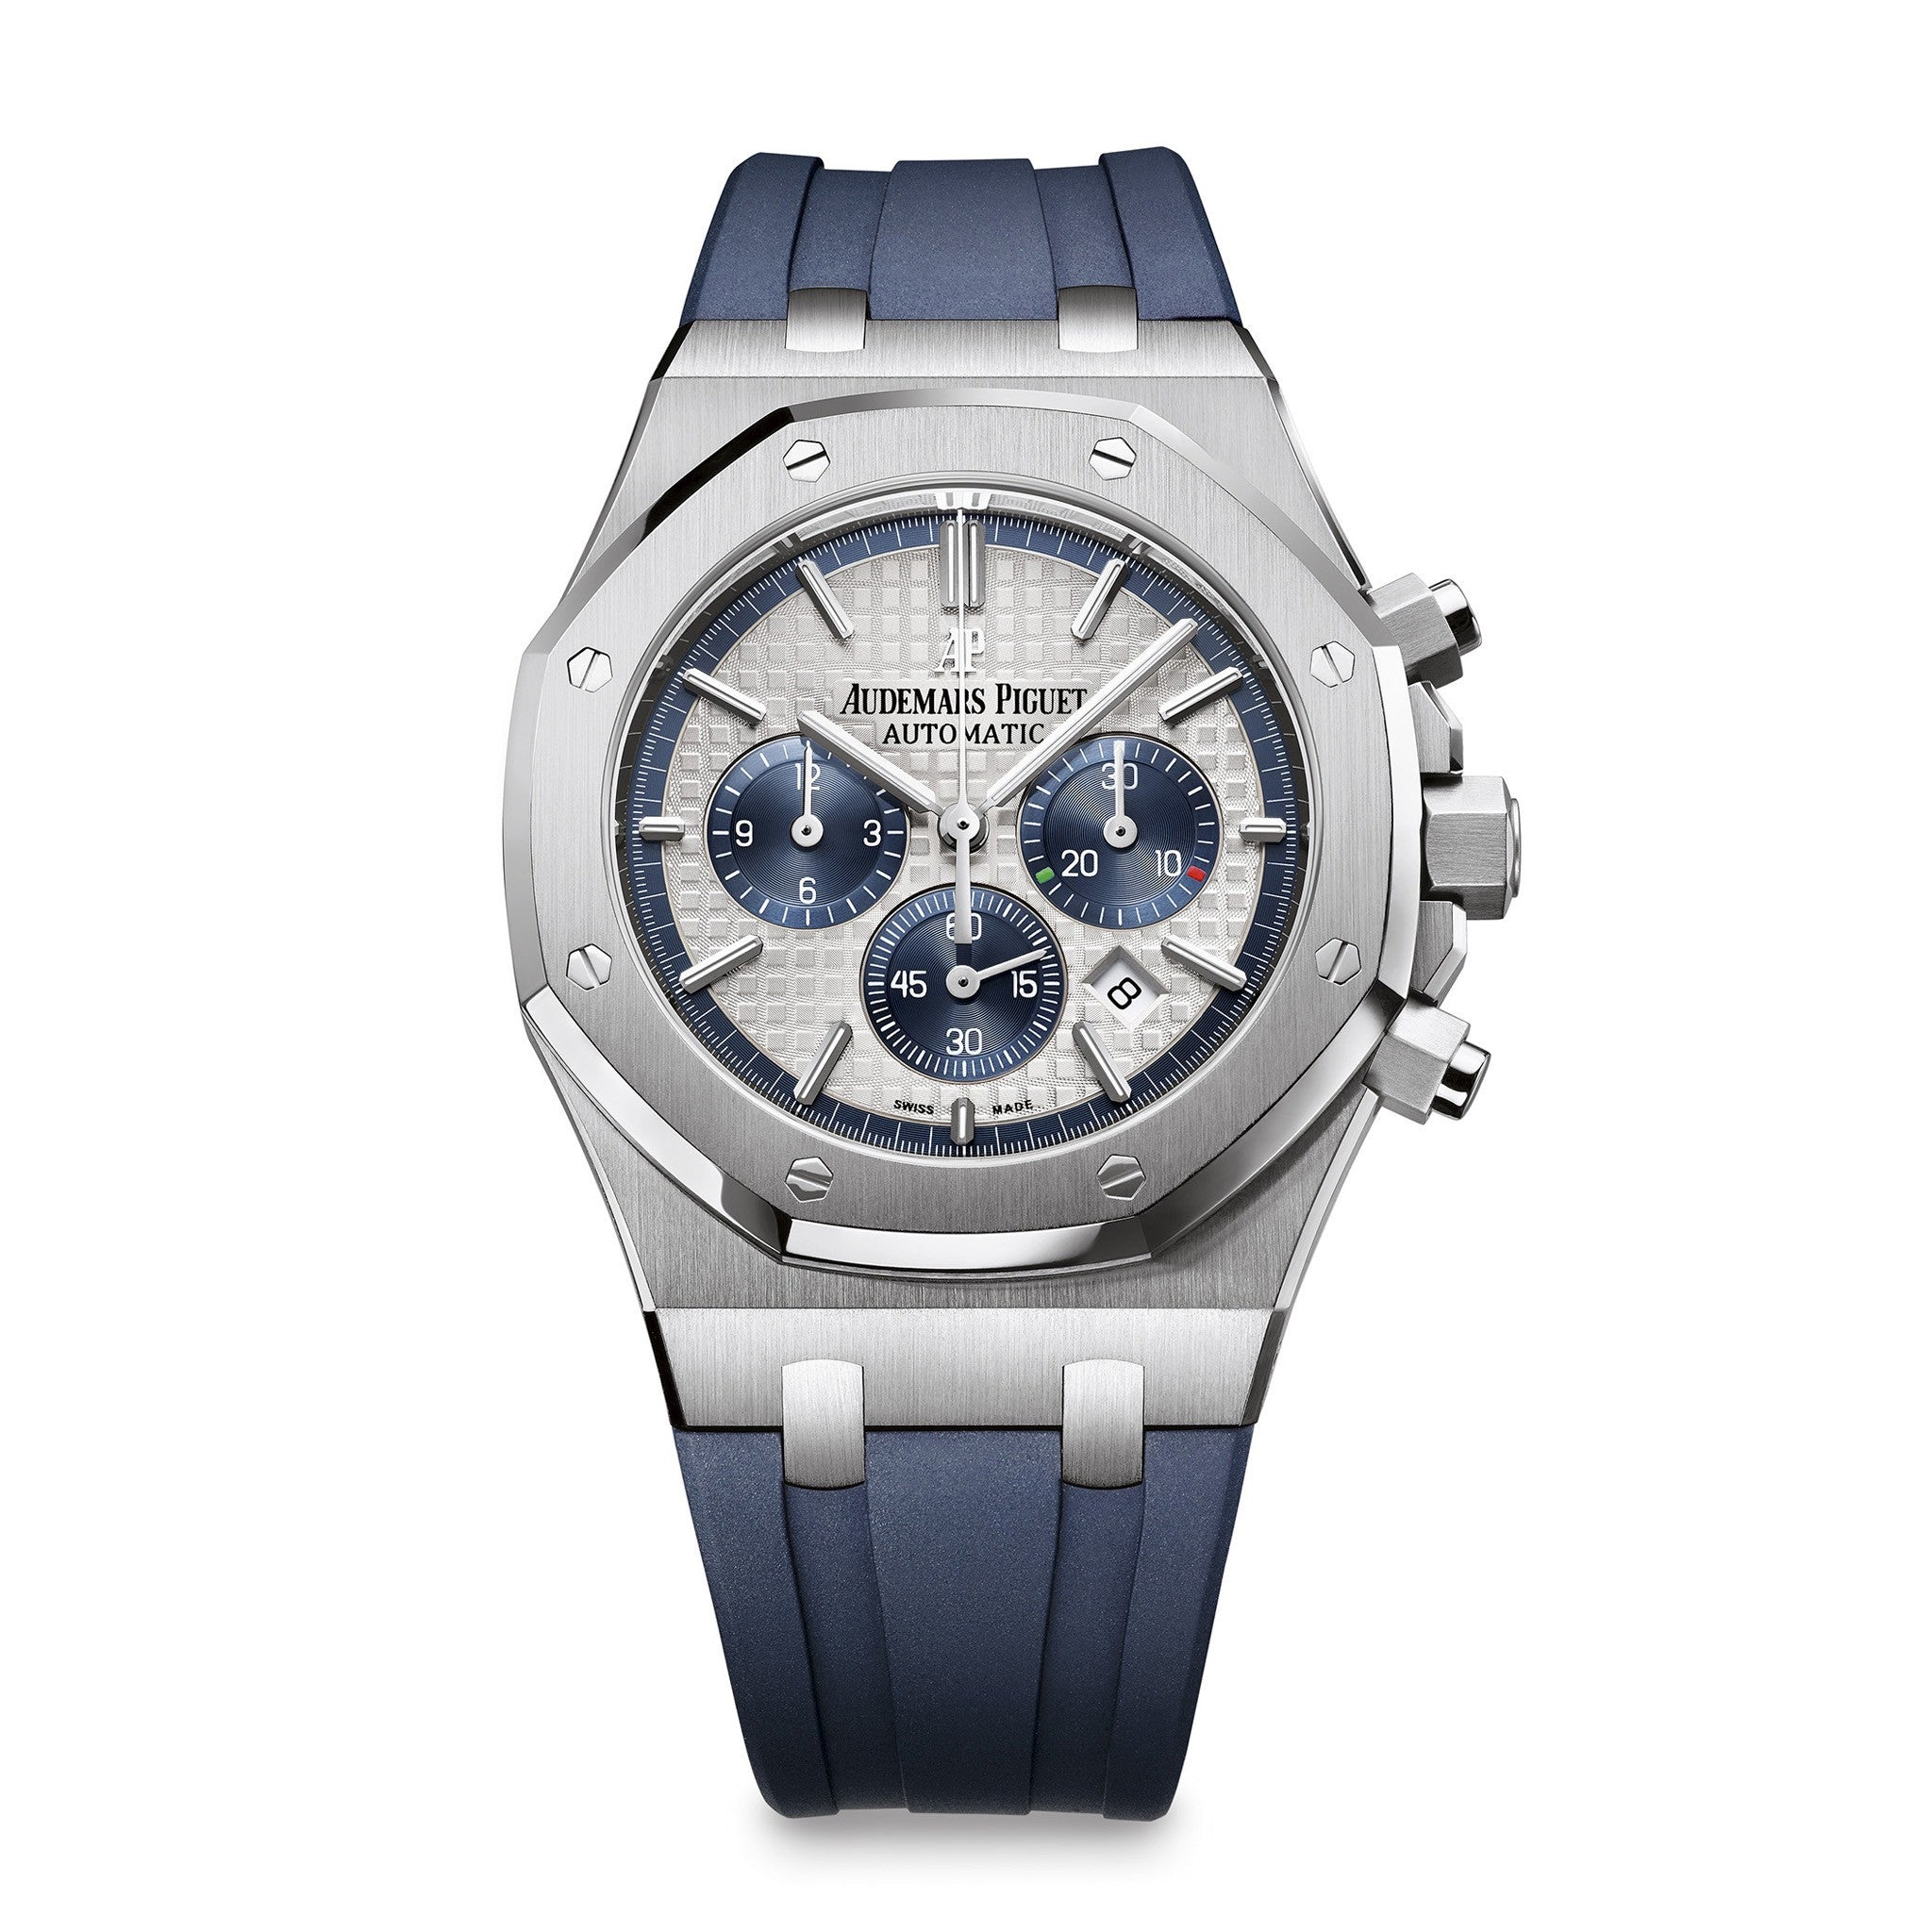 Royal Oak Chronograph 26326ST.OO.D027CA.01 - Audemars Piguet